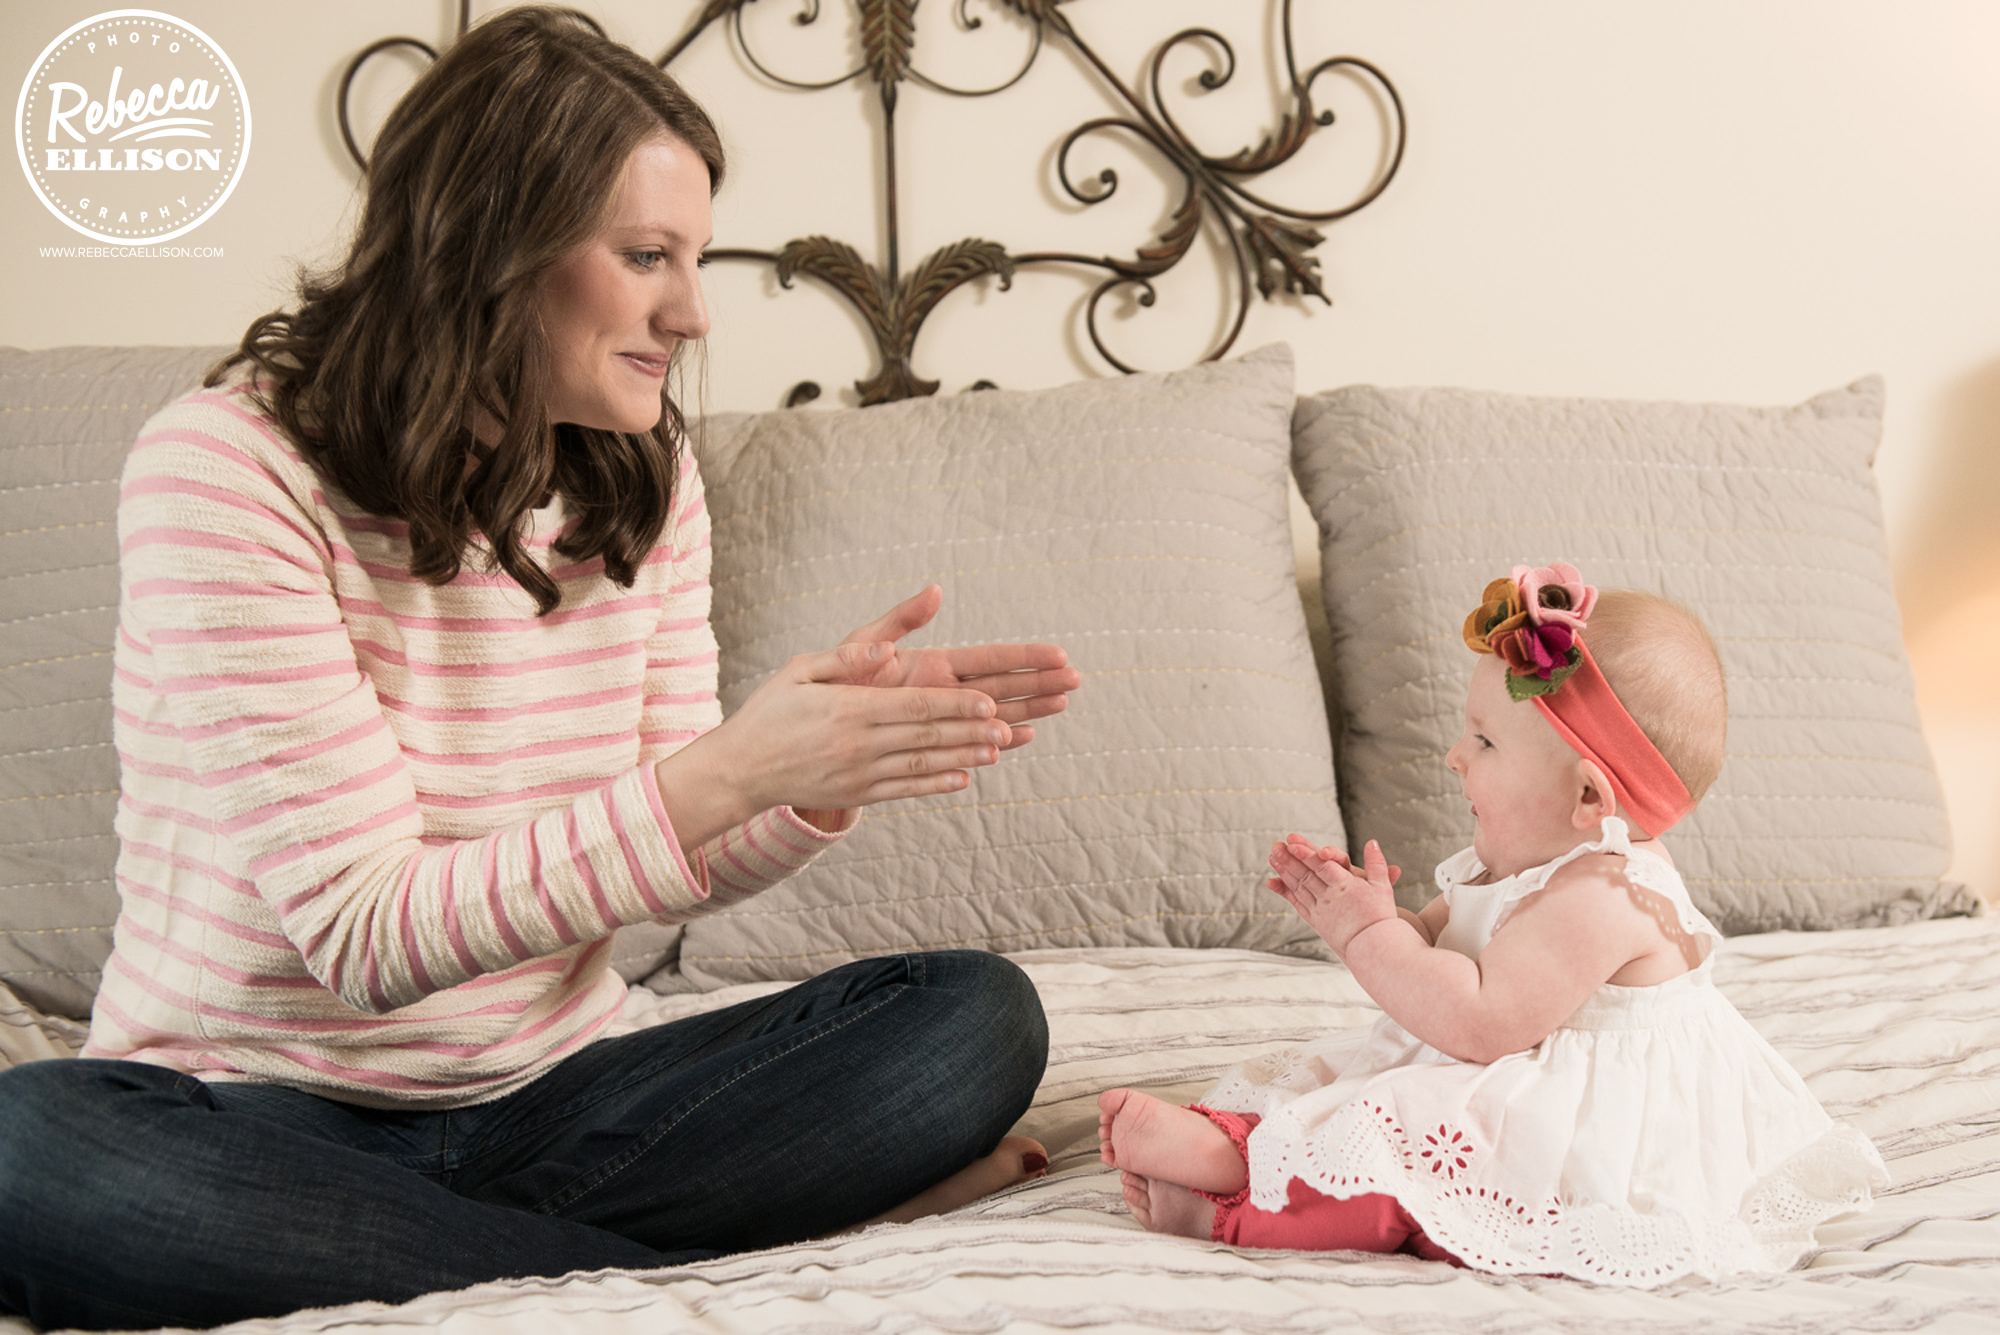 Mom and Baby clap hands at a lifestyle photography session in Bellevue photographed by Rebecca Ellison Photography